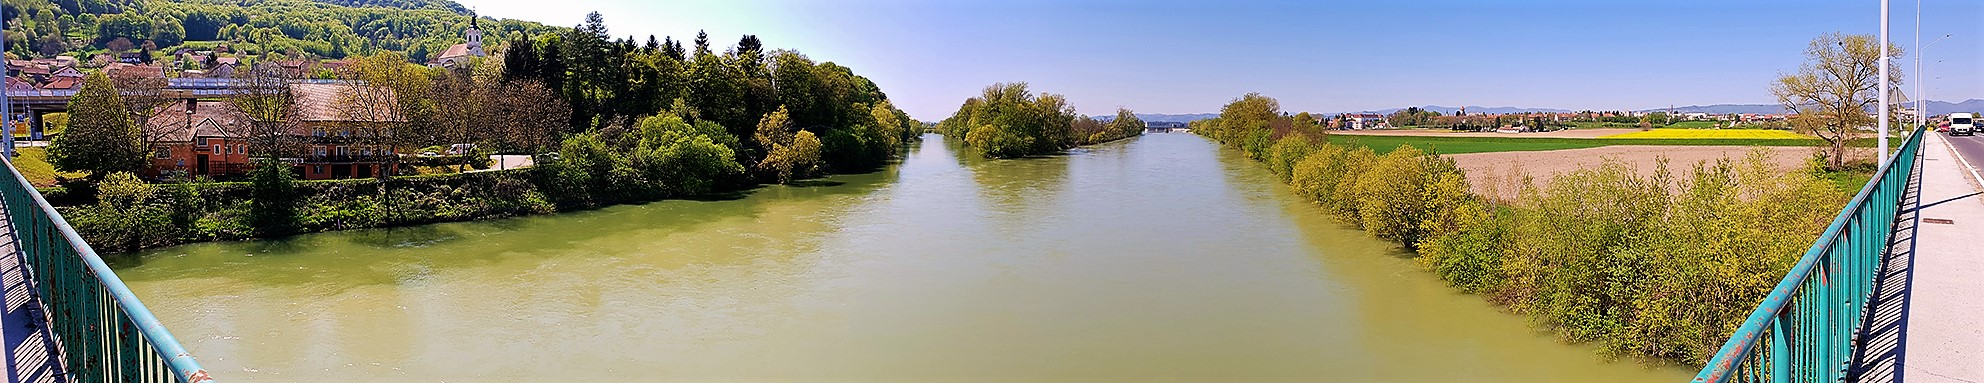 Confluence of Sava and Krka rivers in Slovenia. The Sava river provides important habitat to fish species © Marko Zupančič